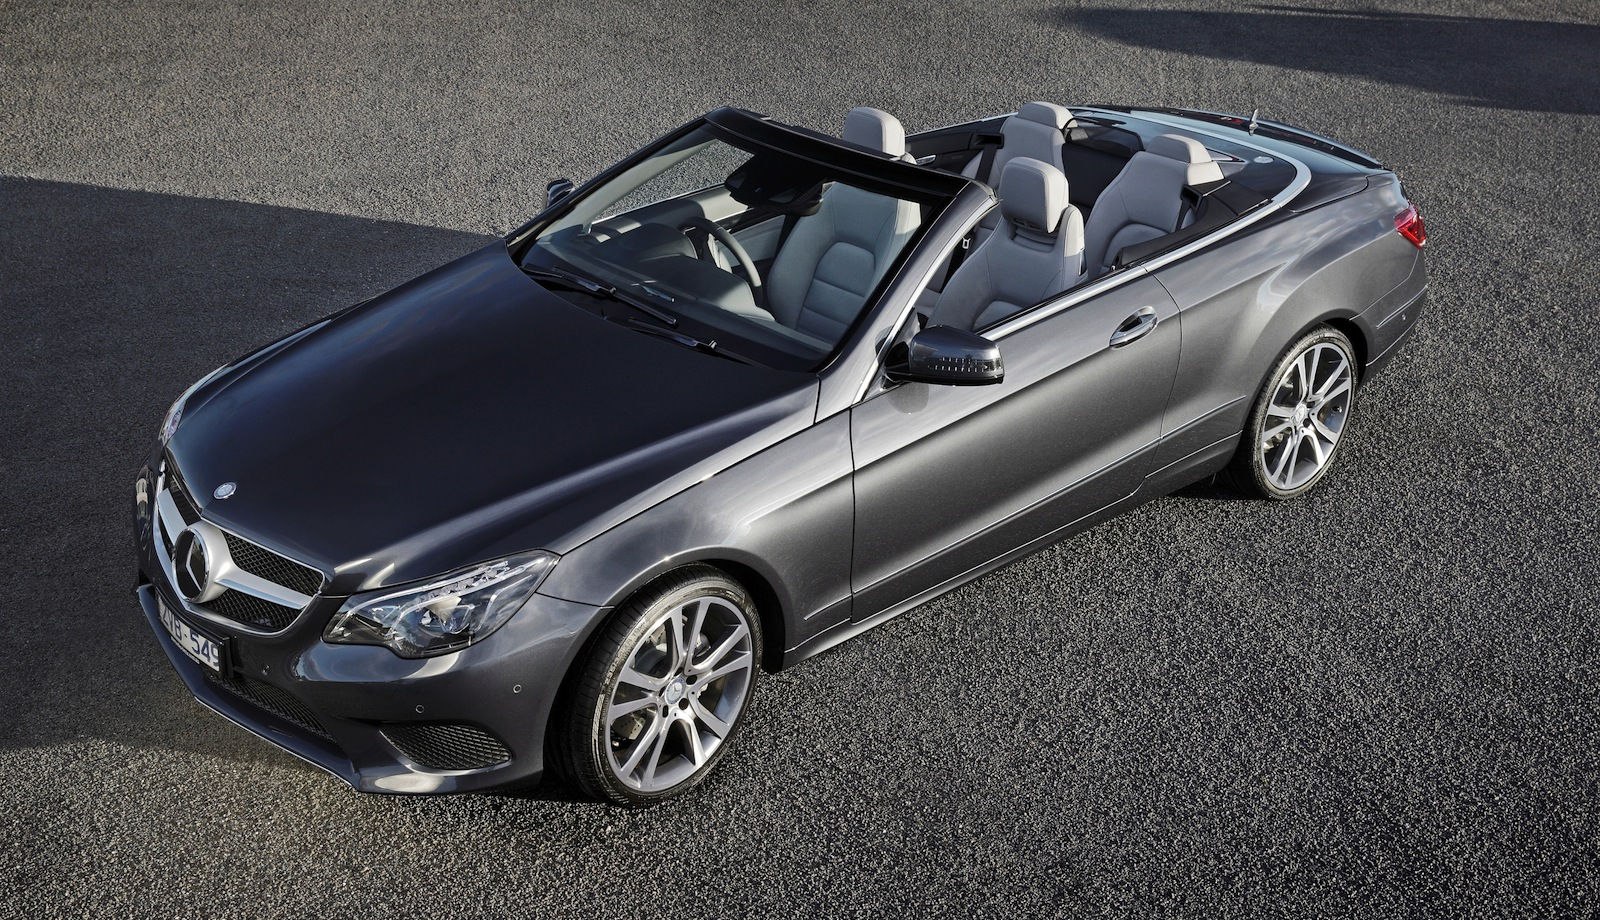 Mercedes E400 Convertible >> E-Class Coupe and Convertible Reviewed by Car Advice - autoevolution